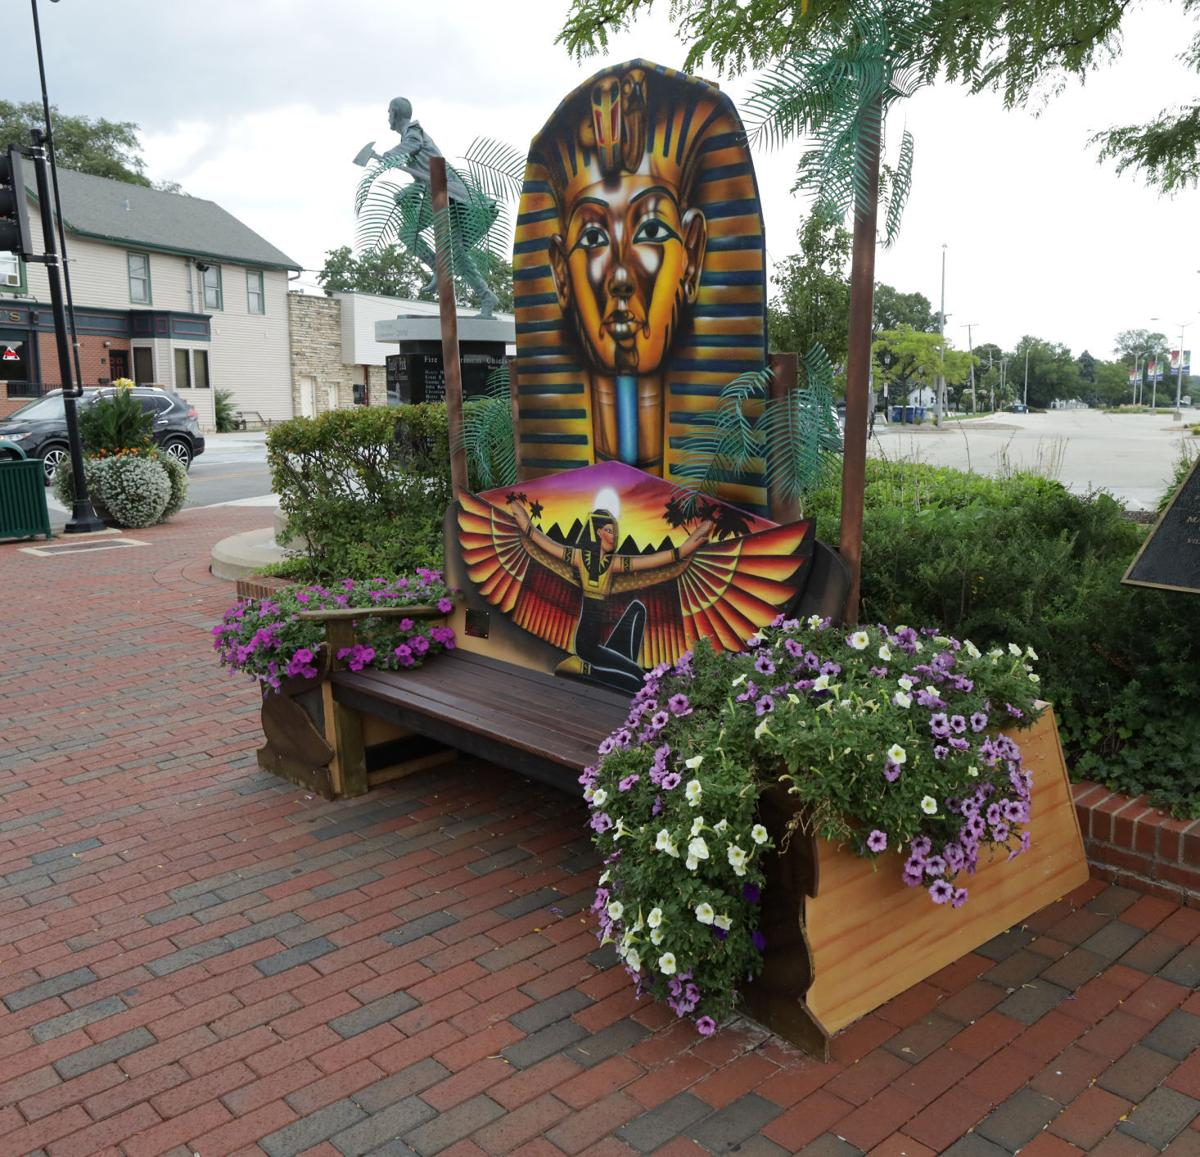 Benches in Tinley Park public art project offer a colorful, creative trip around the world